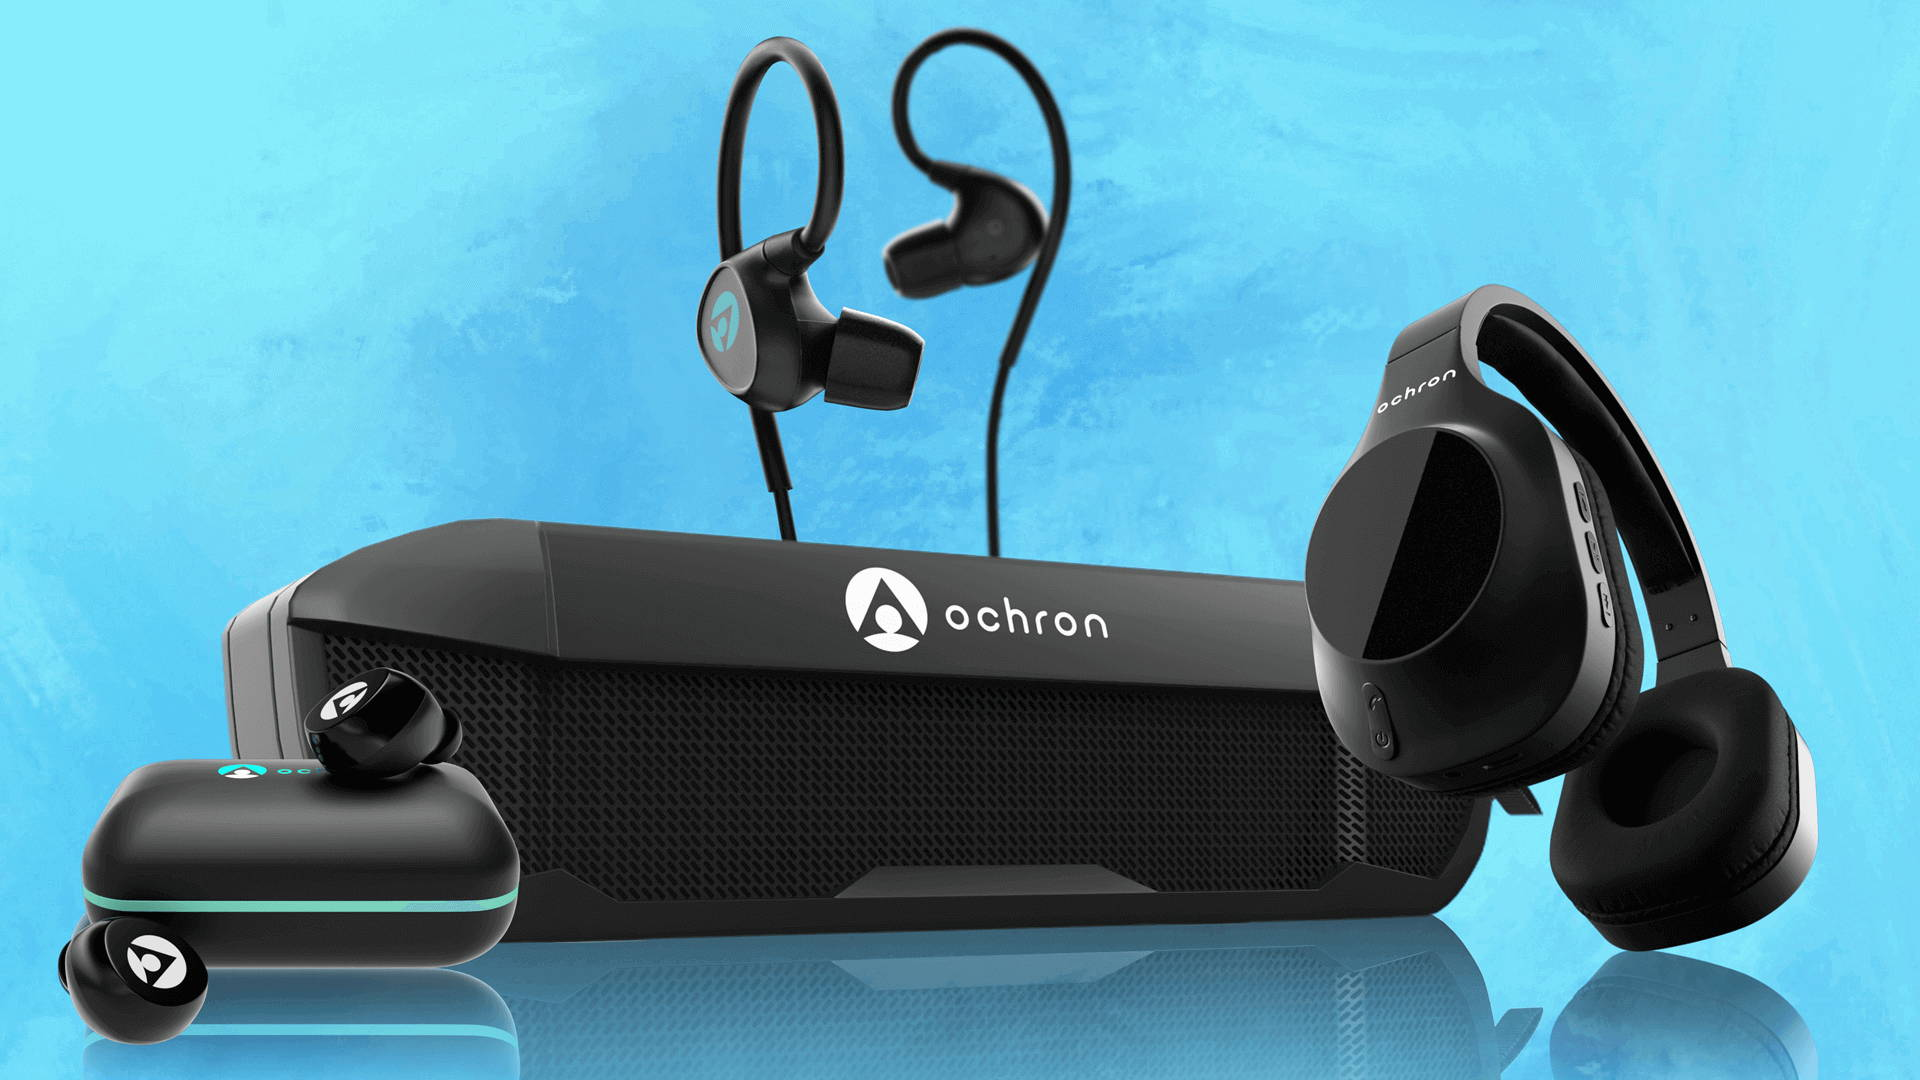 Ochron Tunes boasts a wide range of best in class lifestyle audio electronics  that are beautifully designed and has a great performance. Ochron Tunes, for true music lovers.